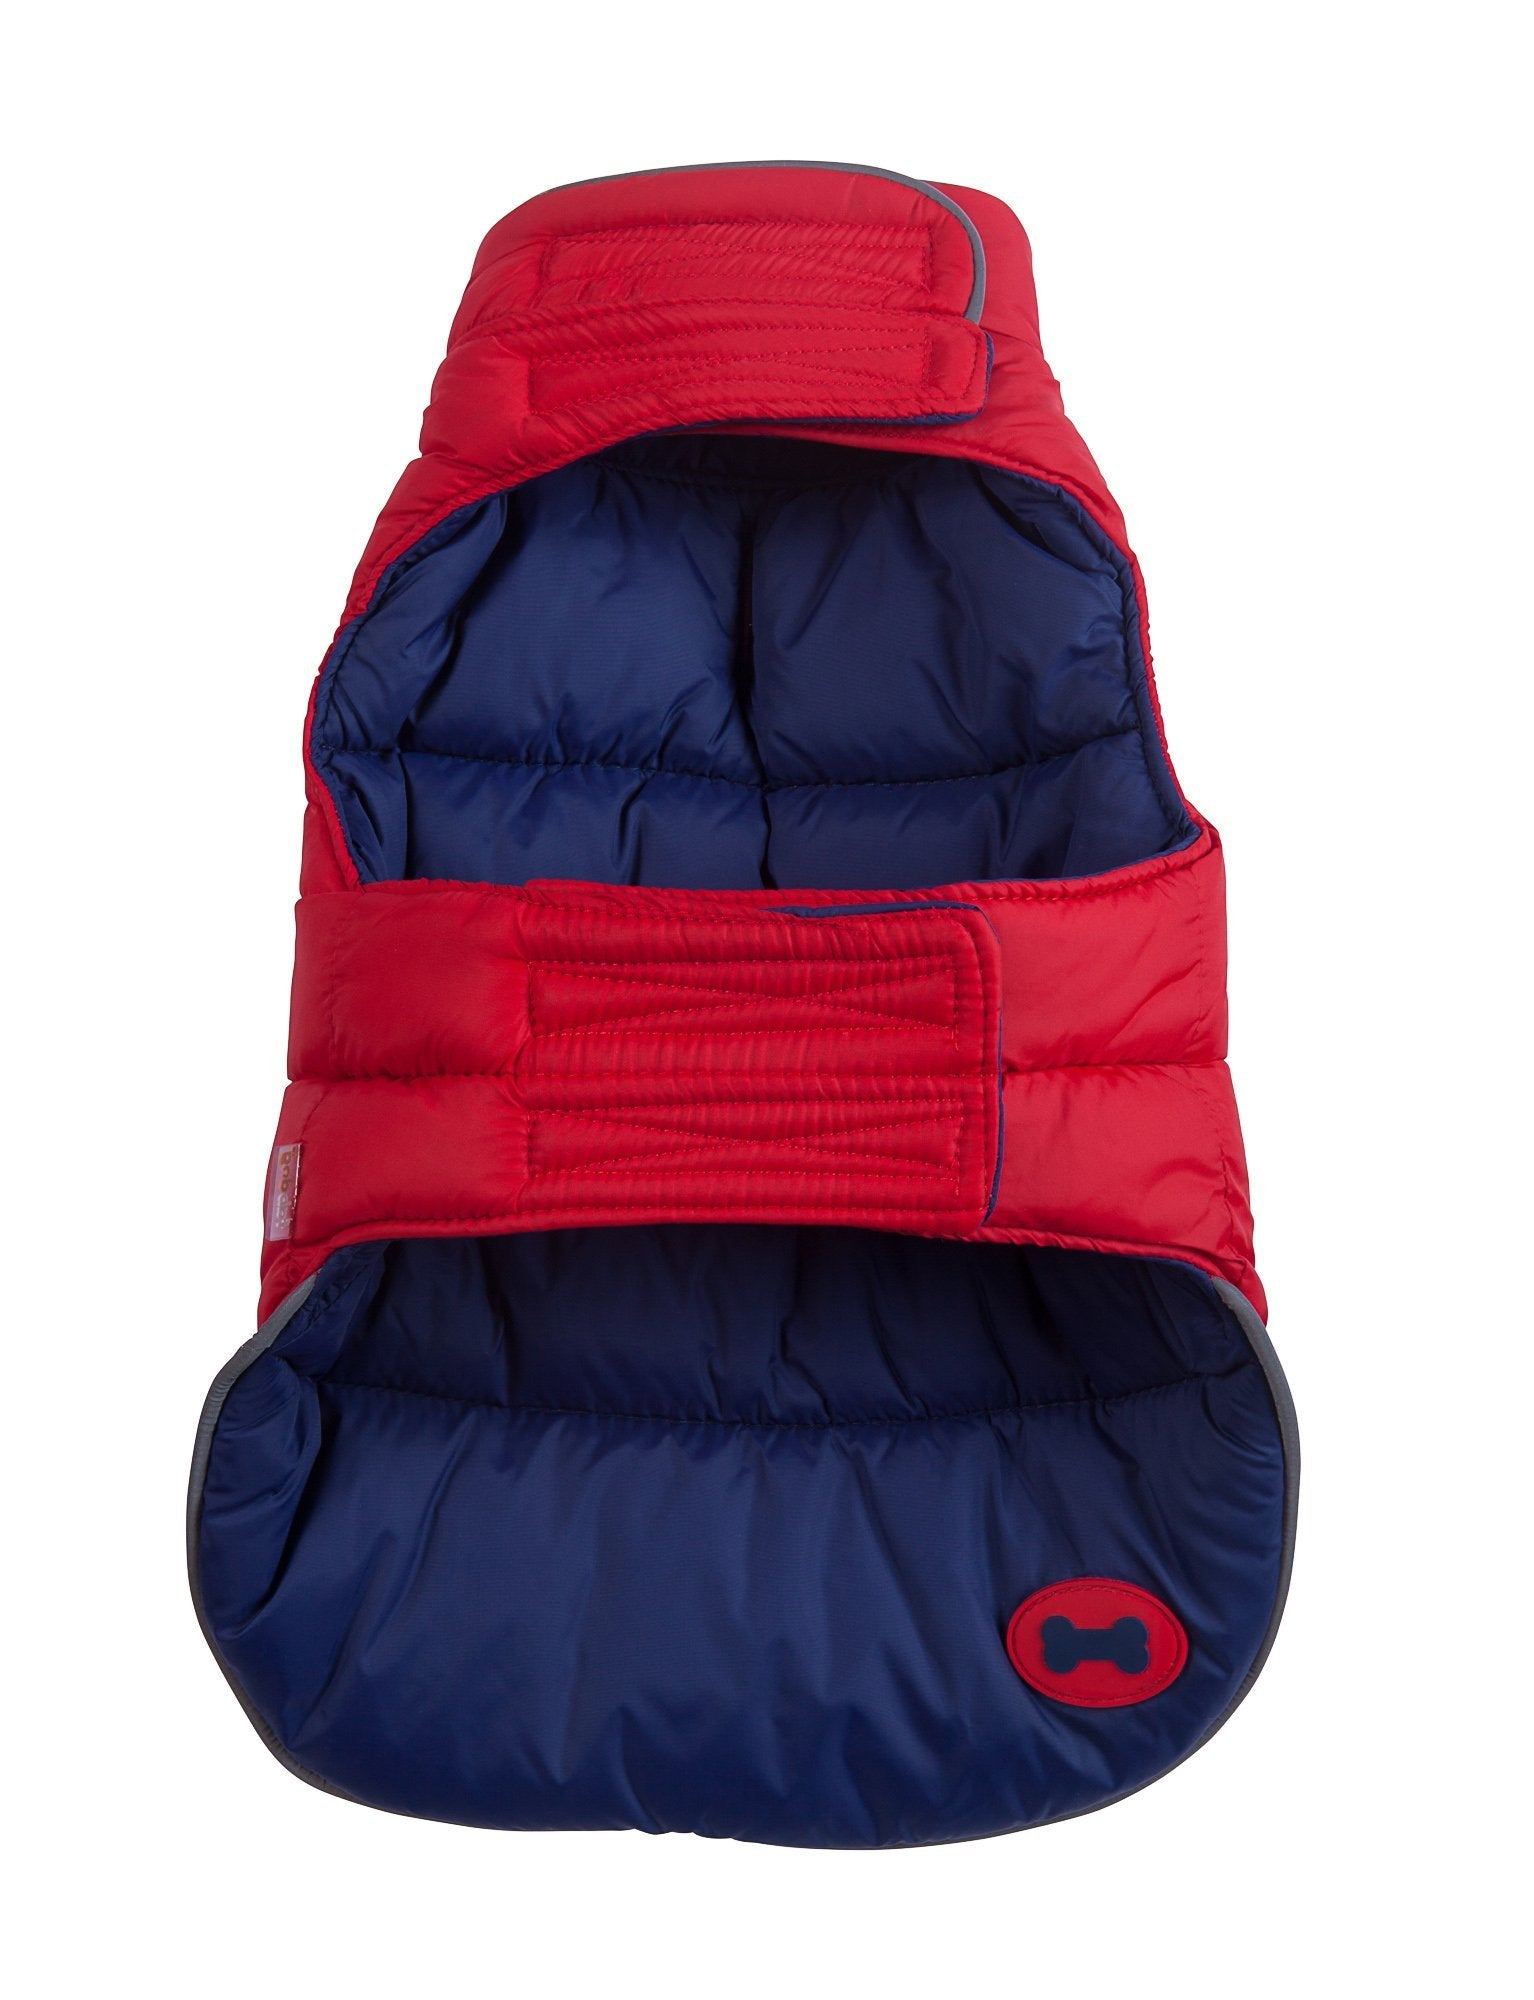 fabdog Coat Red and Navy Reversible Dog Puffer Jacket